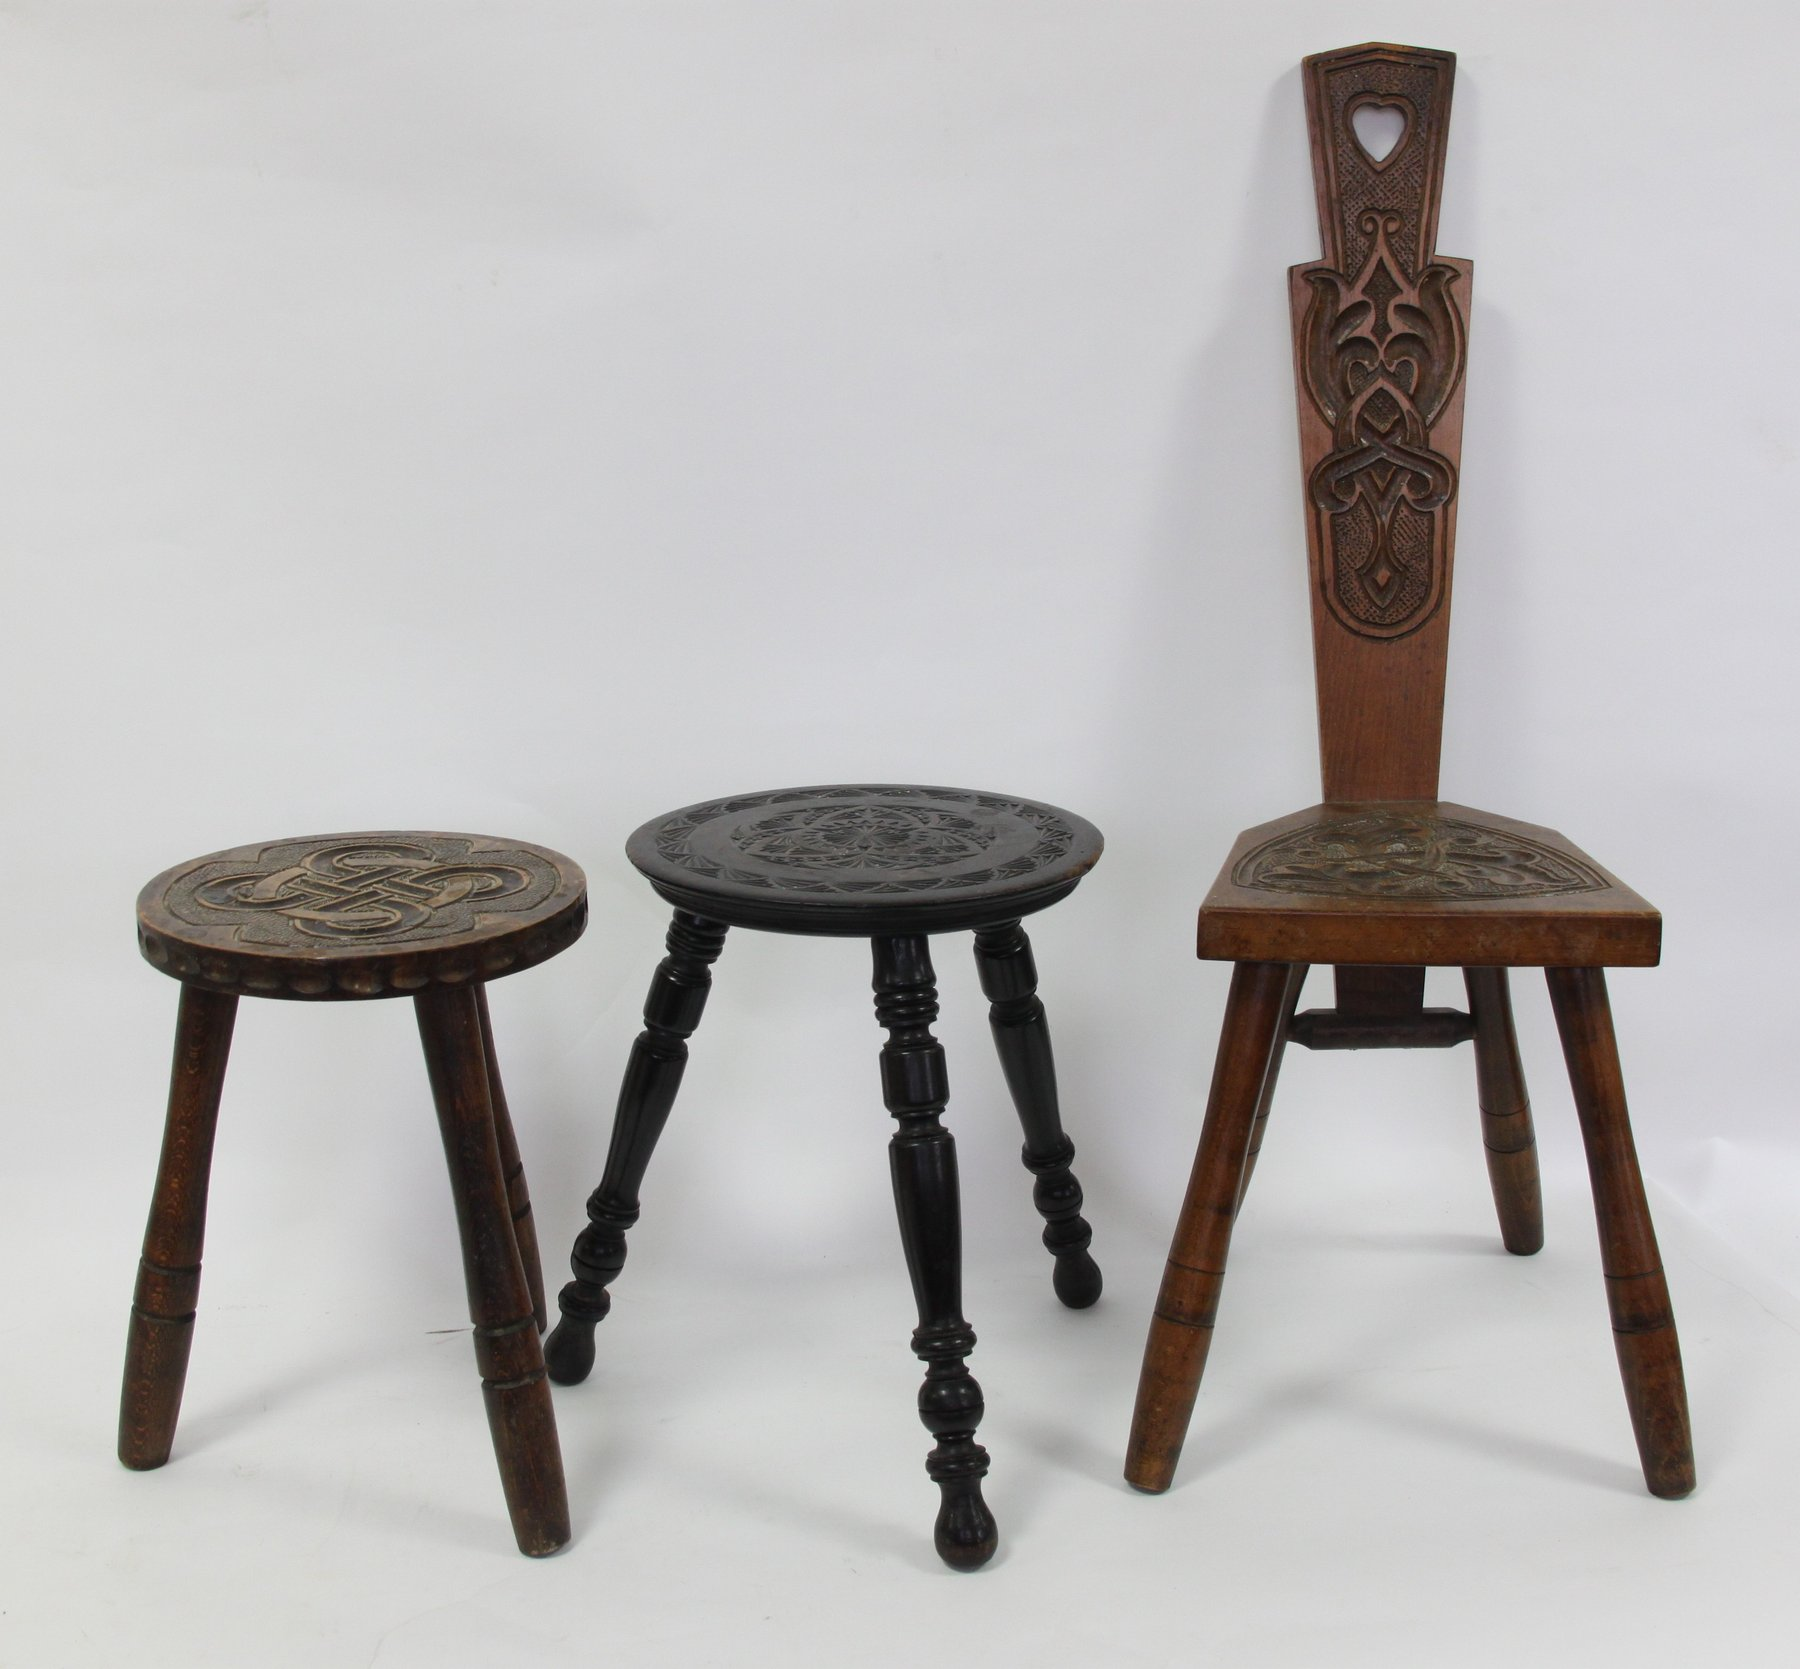 Pleasing Price Guide For A Turned Wood Spinning Wheel A Carved Chair Creativecarmelina Interior Chair Design Creativecarmelinacom